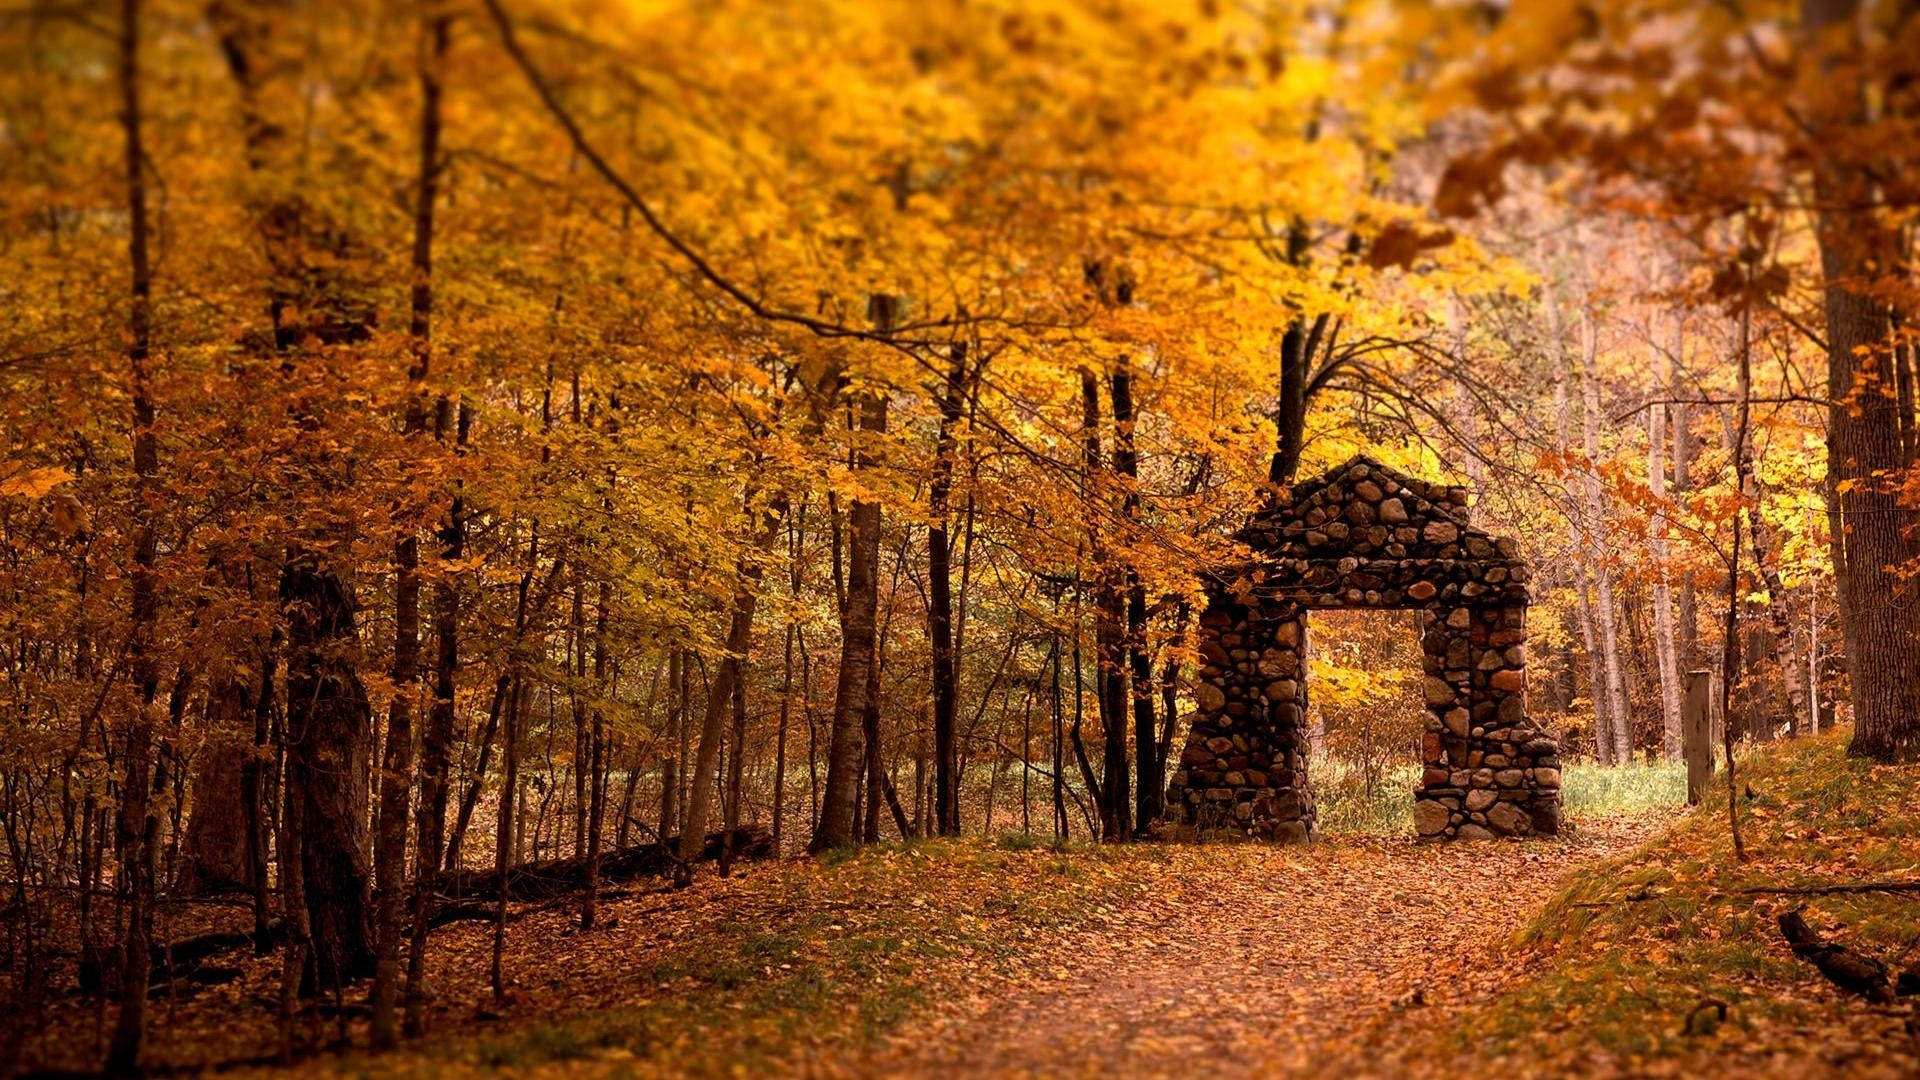 Res: 1920x1080,  Autumn day and maple desktop backgrounds wide wallpapers:1280x800,1440x900,1680x1050  -